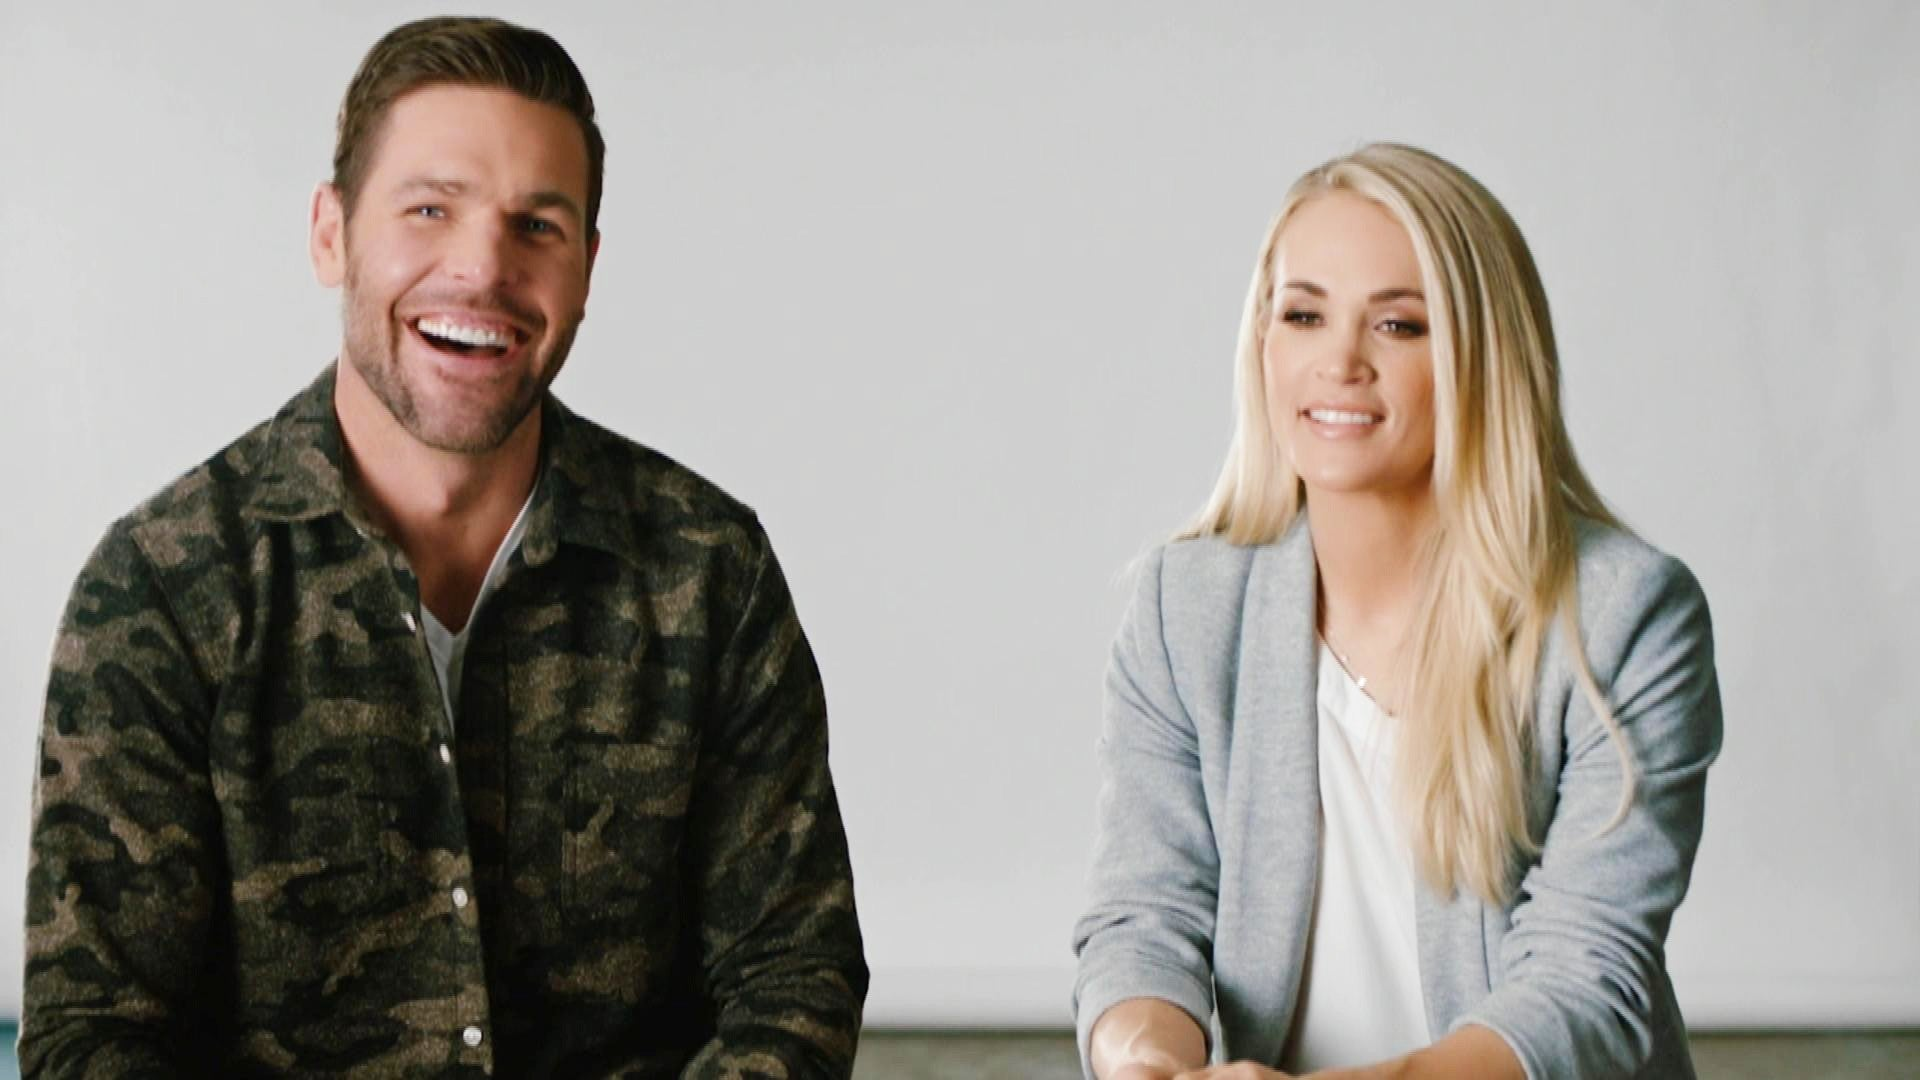 Carrie Underwood And Mike Fisher Admit They Felt Differently About